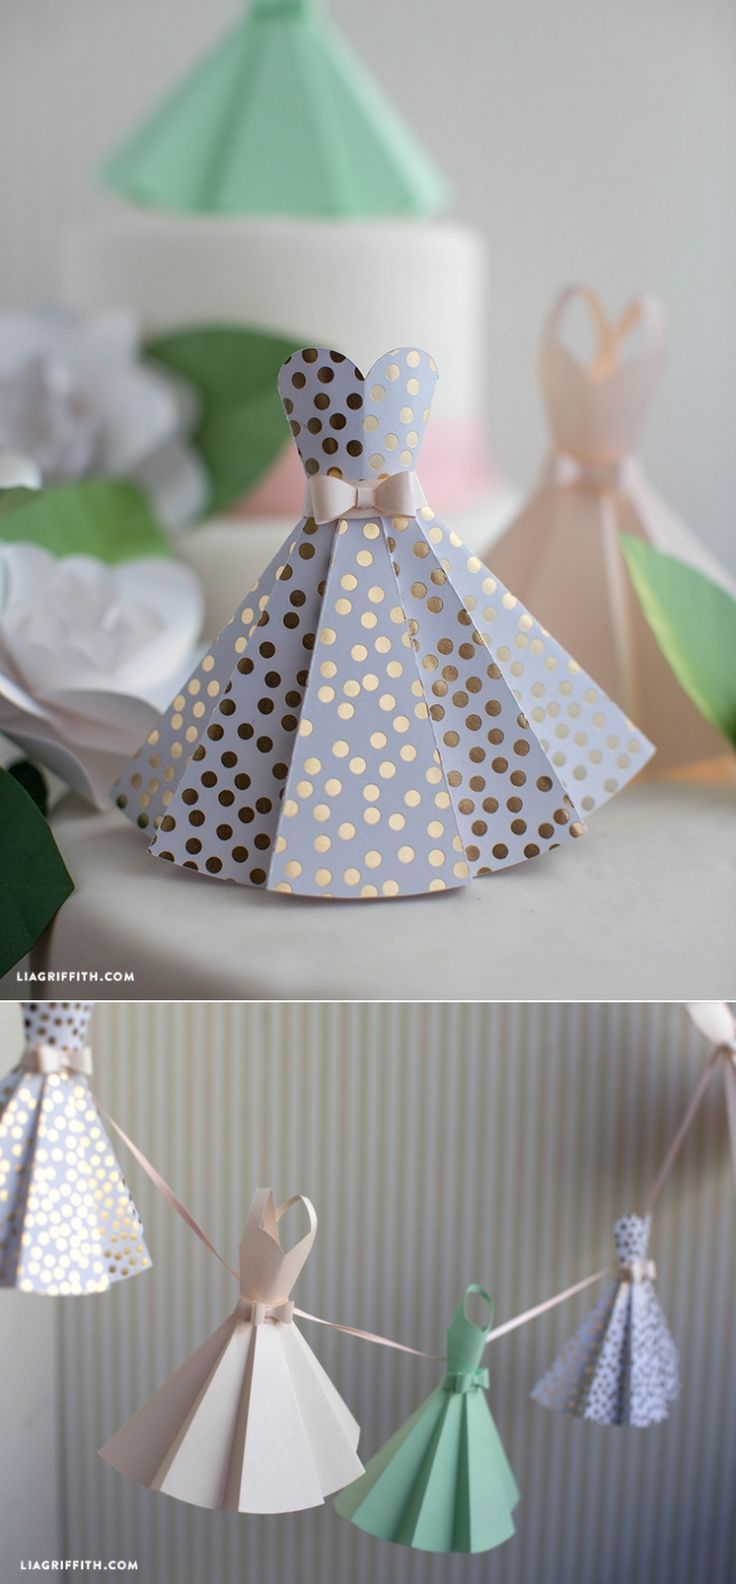 Paper Dress DIY Wedding Decorations | Diy wedding ...